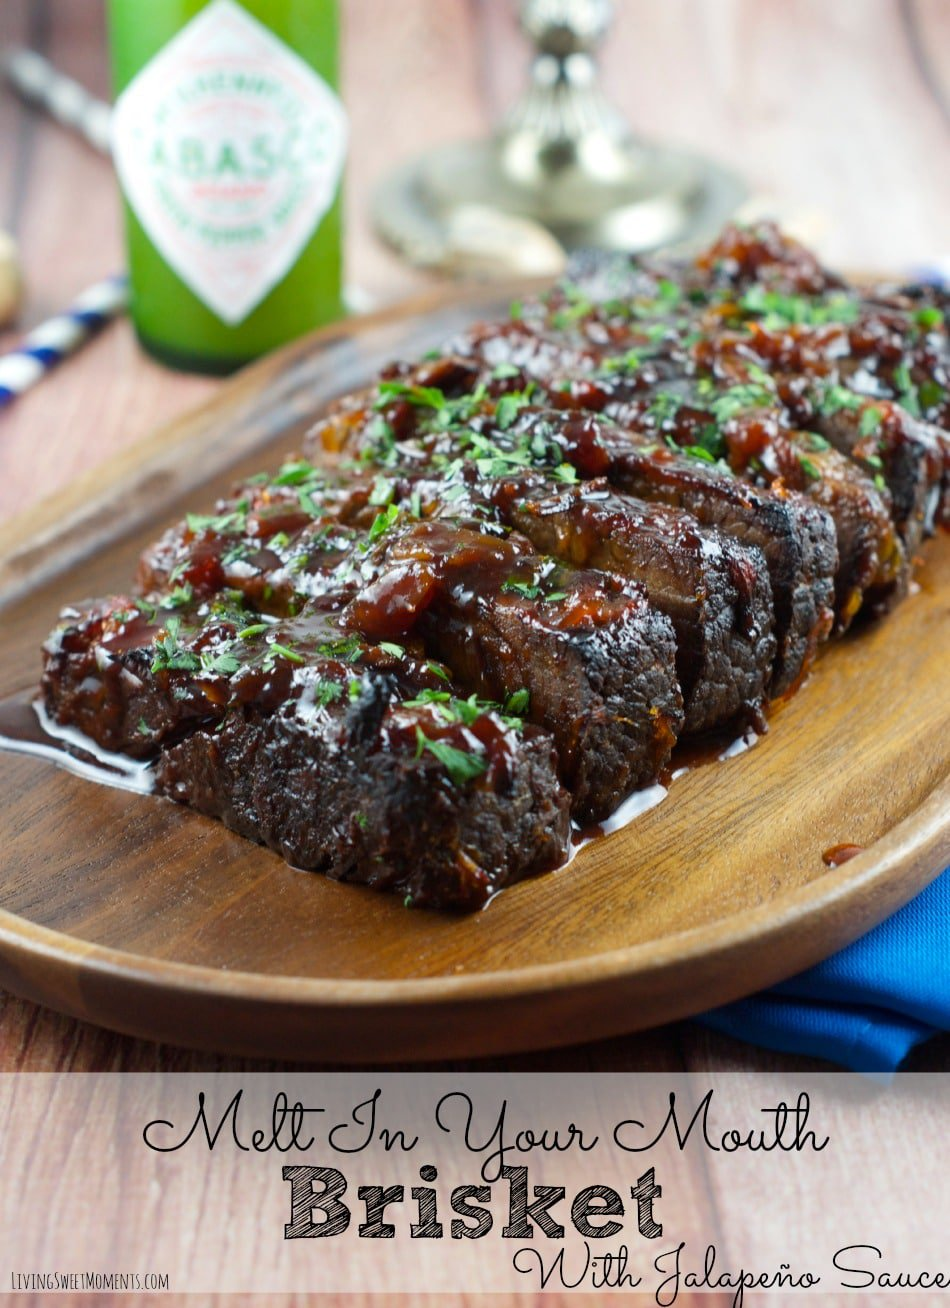 In a lot of Jewish families, brisket and Hanukkah seem to go hand in hand, and this version from  Living Sweet Moments  with a jalapeño sauce is something I need to try out.